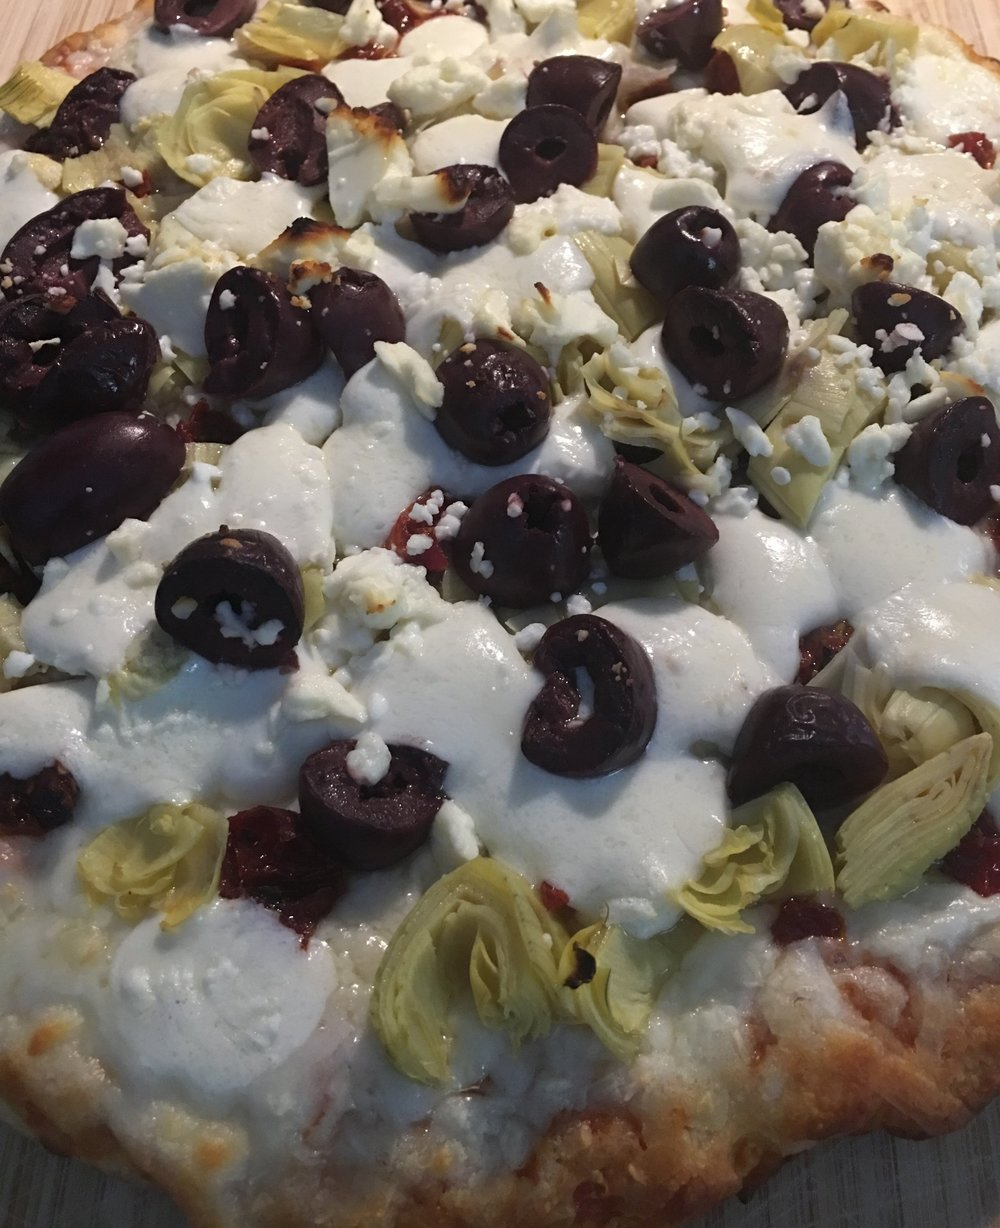 Fancied up Costco pizza with sun-dried tomatoes, artichoke hearts, black olives, mozzarella cheese, and feta. TBH, this was too many toppings and cheese, but we still managed to eat it